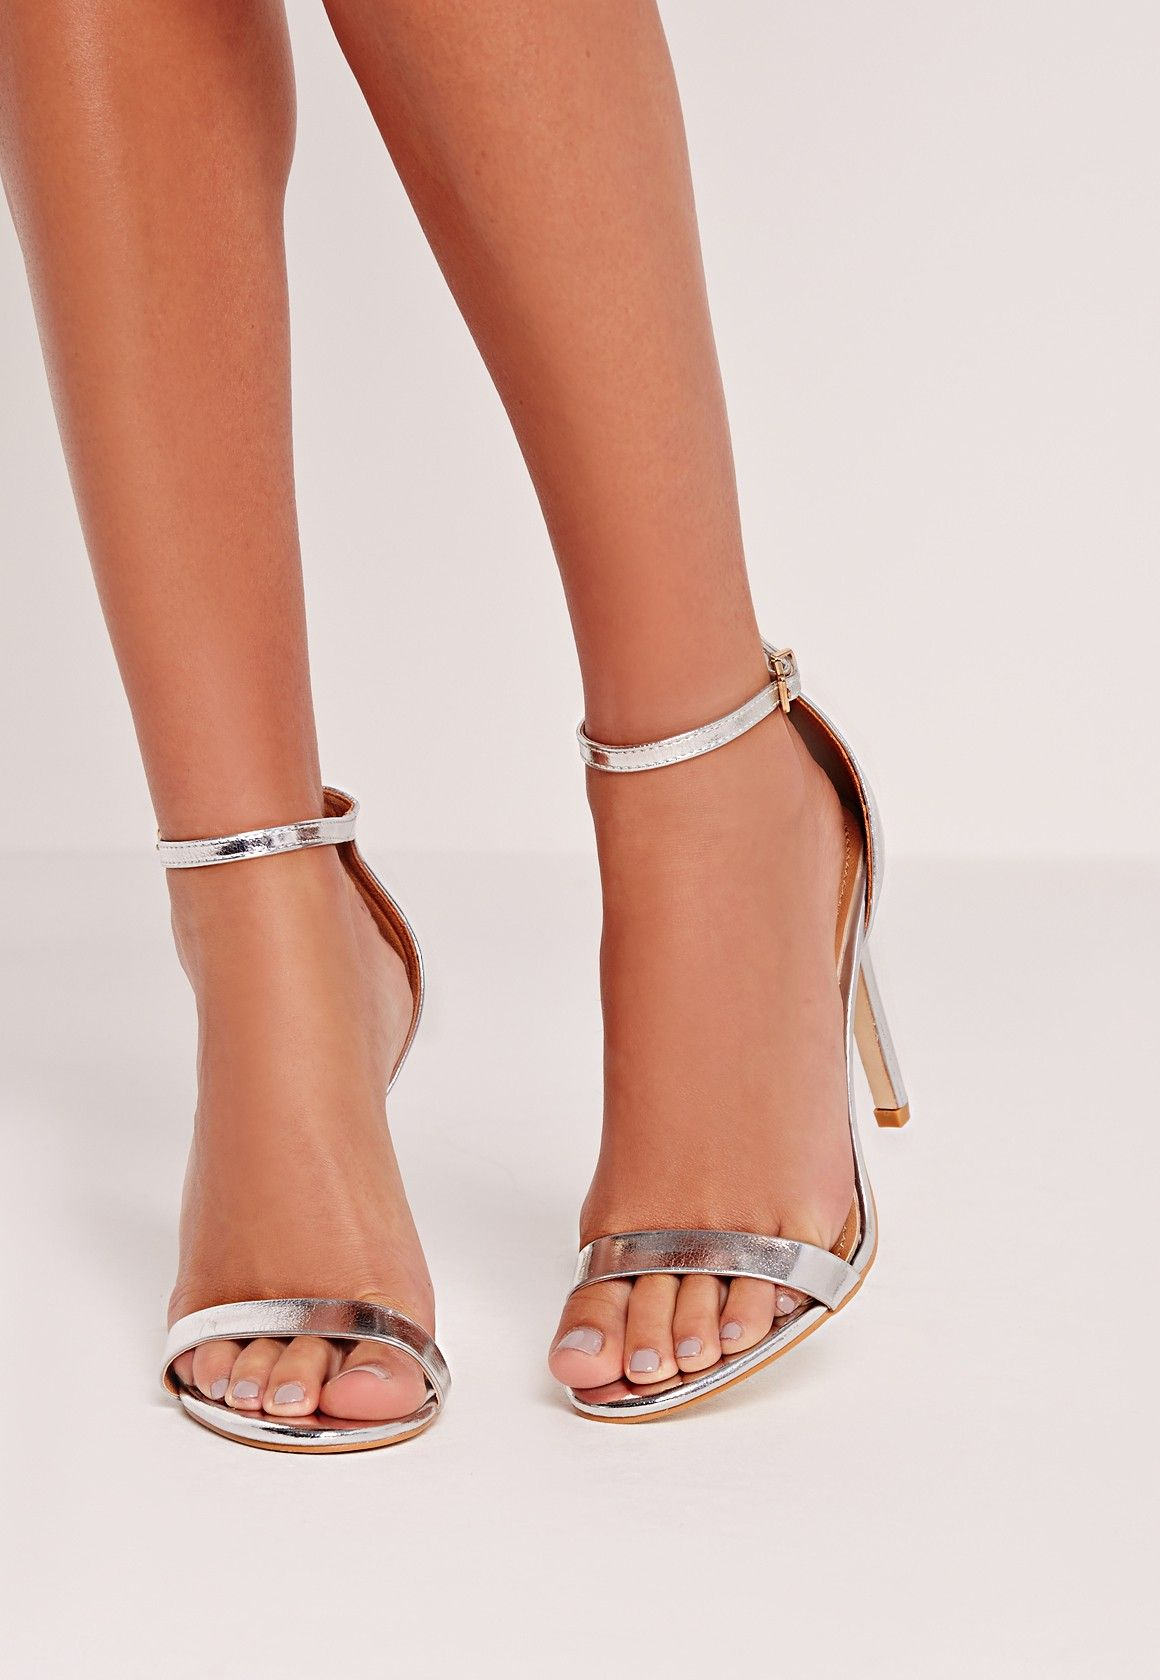 b81b6d2e49f Missguided - Barely There Heeled Sandal Silver